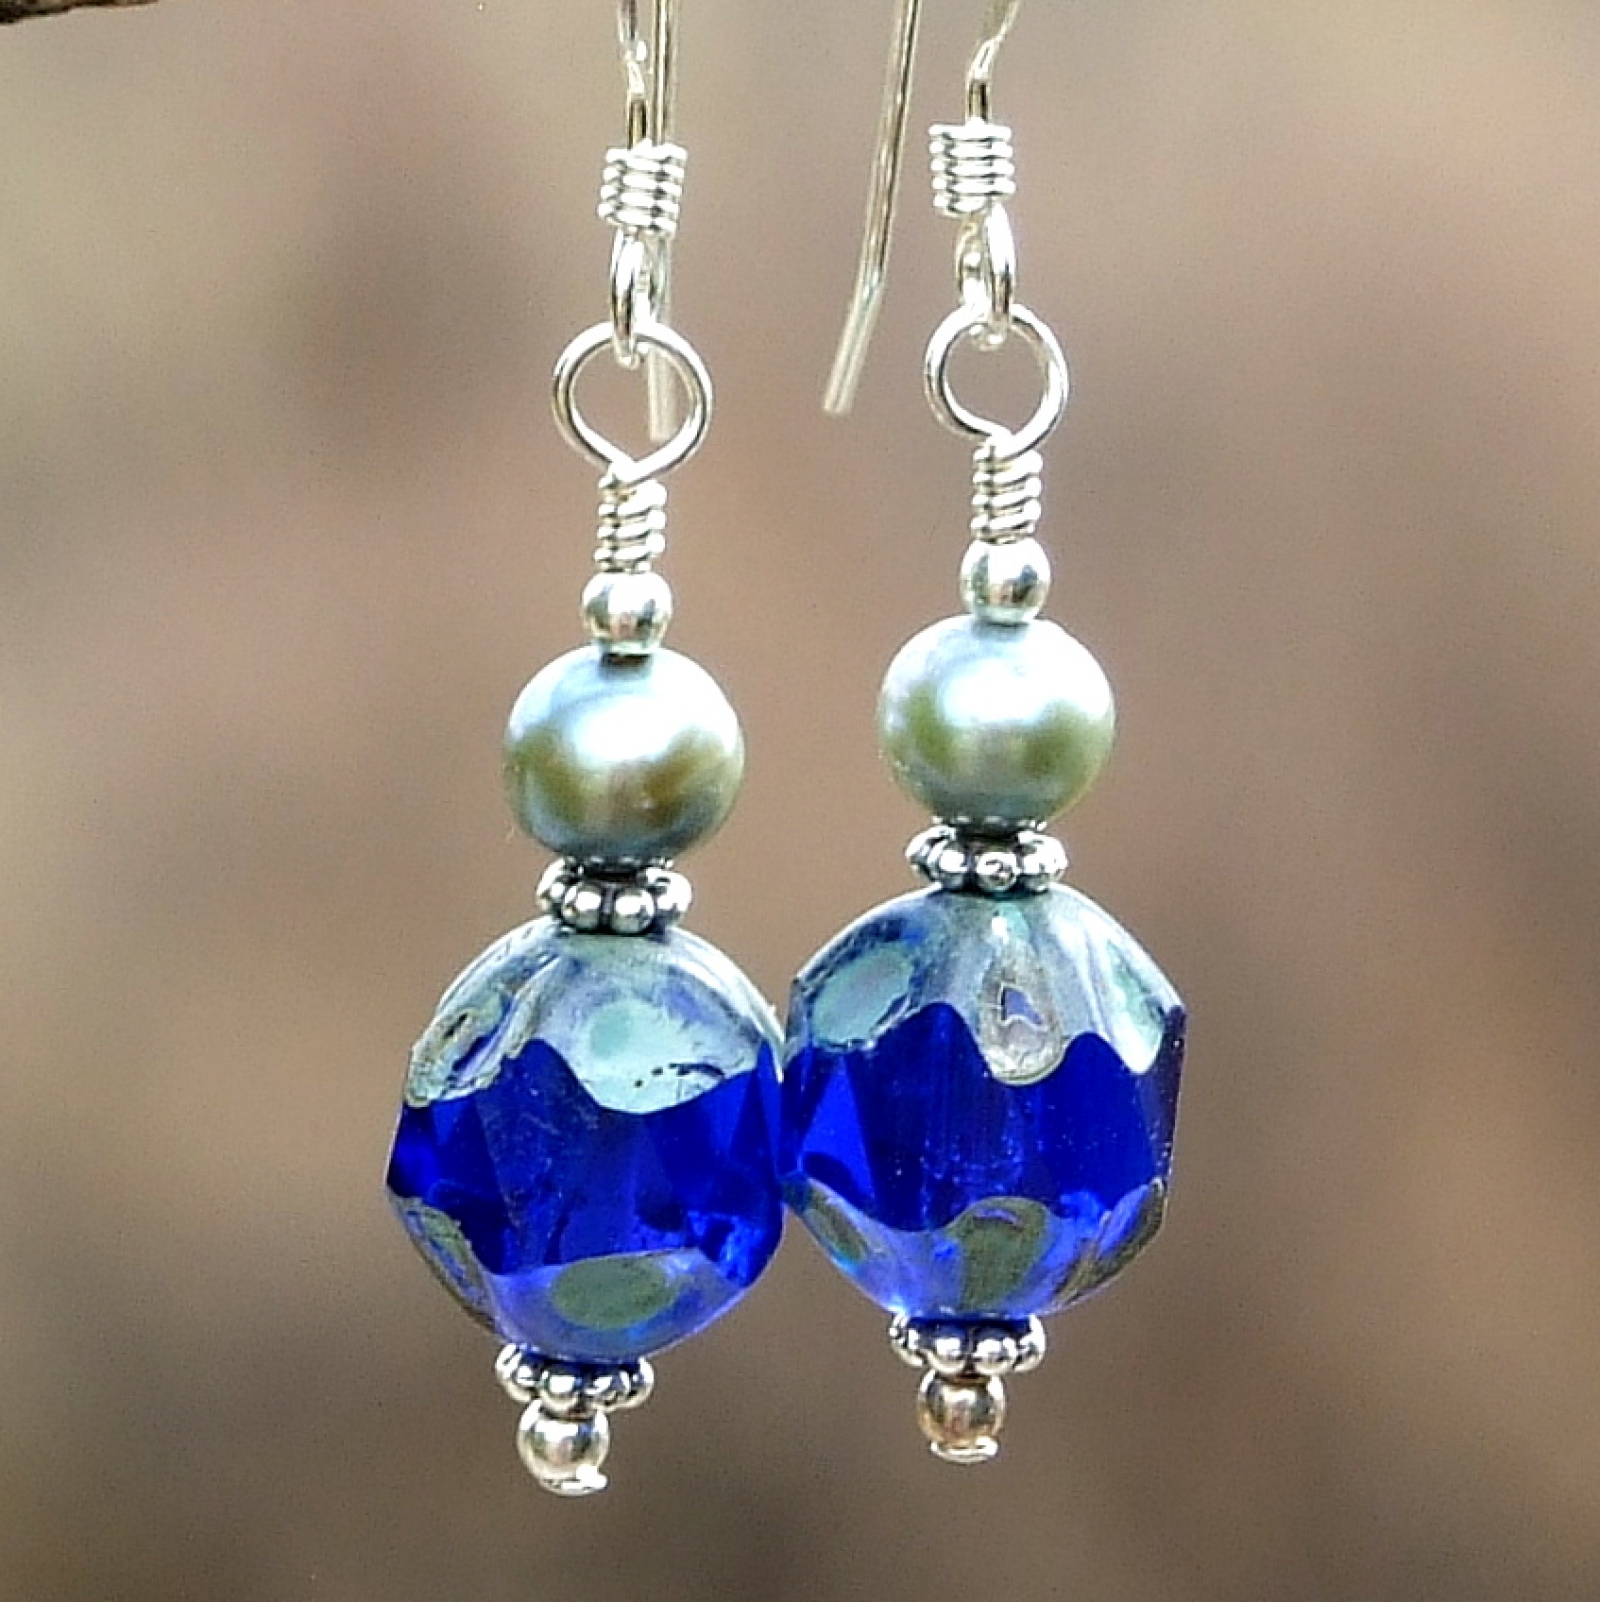 silvertone caged earrings jewelry blue sharon vintage glass antiqued cobalt s products